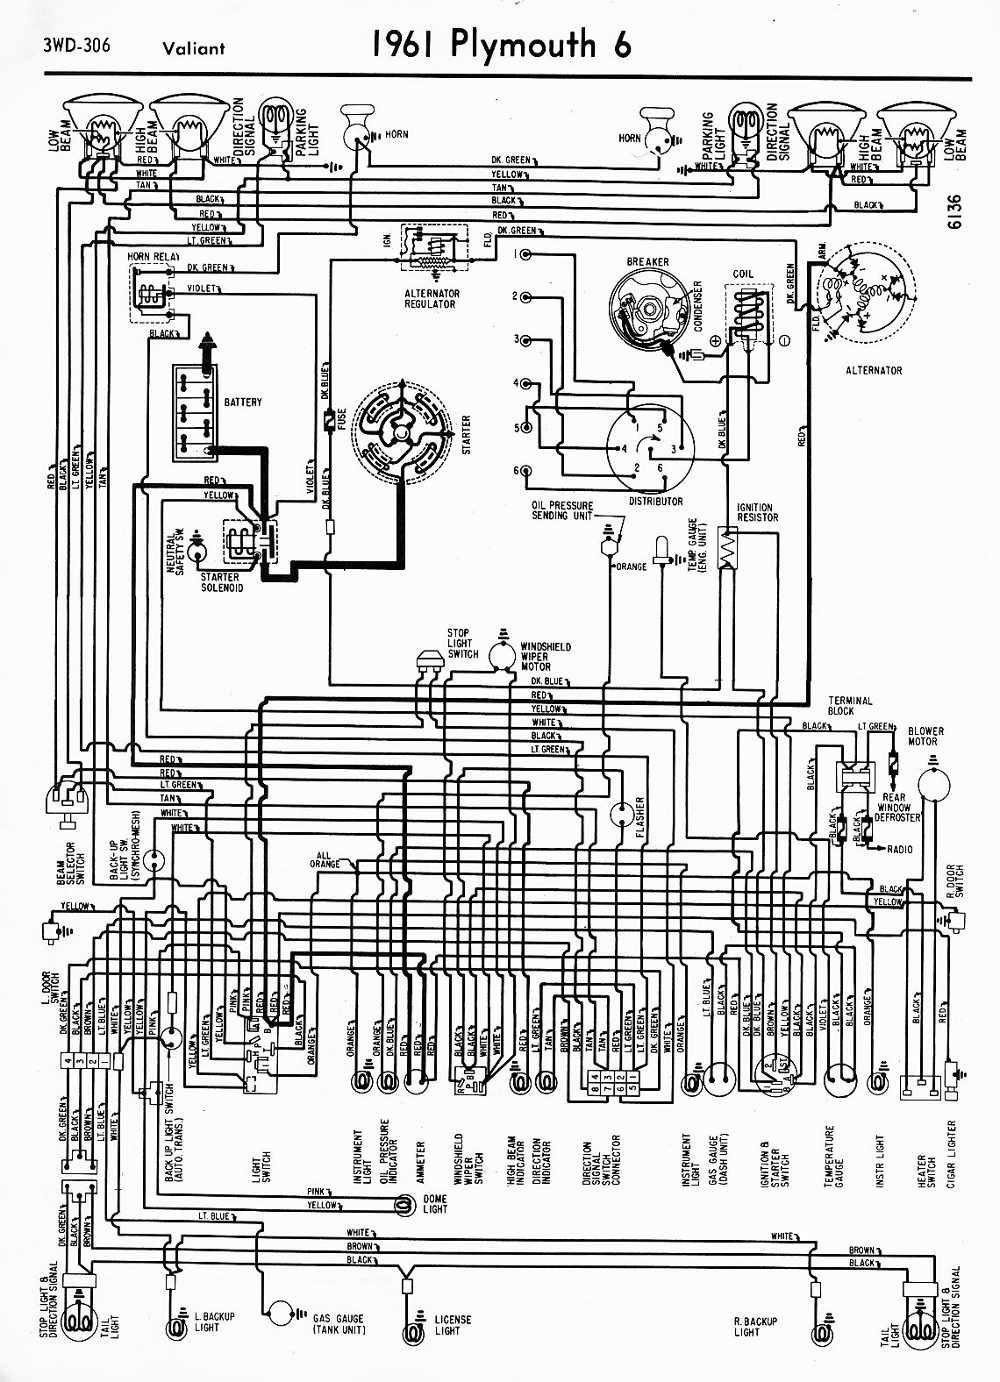 wiring diagrams of 1961 plymouth 6 valiant?t\\\=1508746019 1955 plymouth wiring diagram 1955 wiring diagrams instruction 1970 dodge coronet wiring diagram at soozxer.org